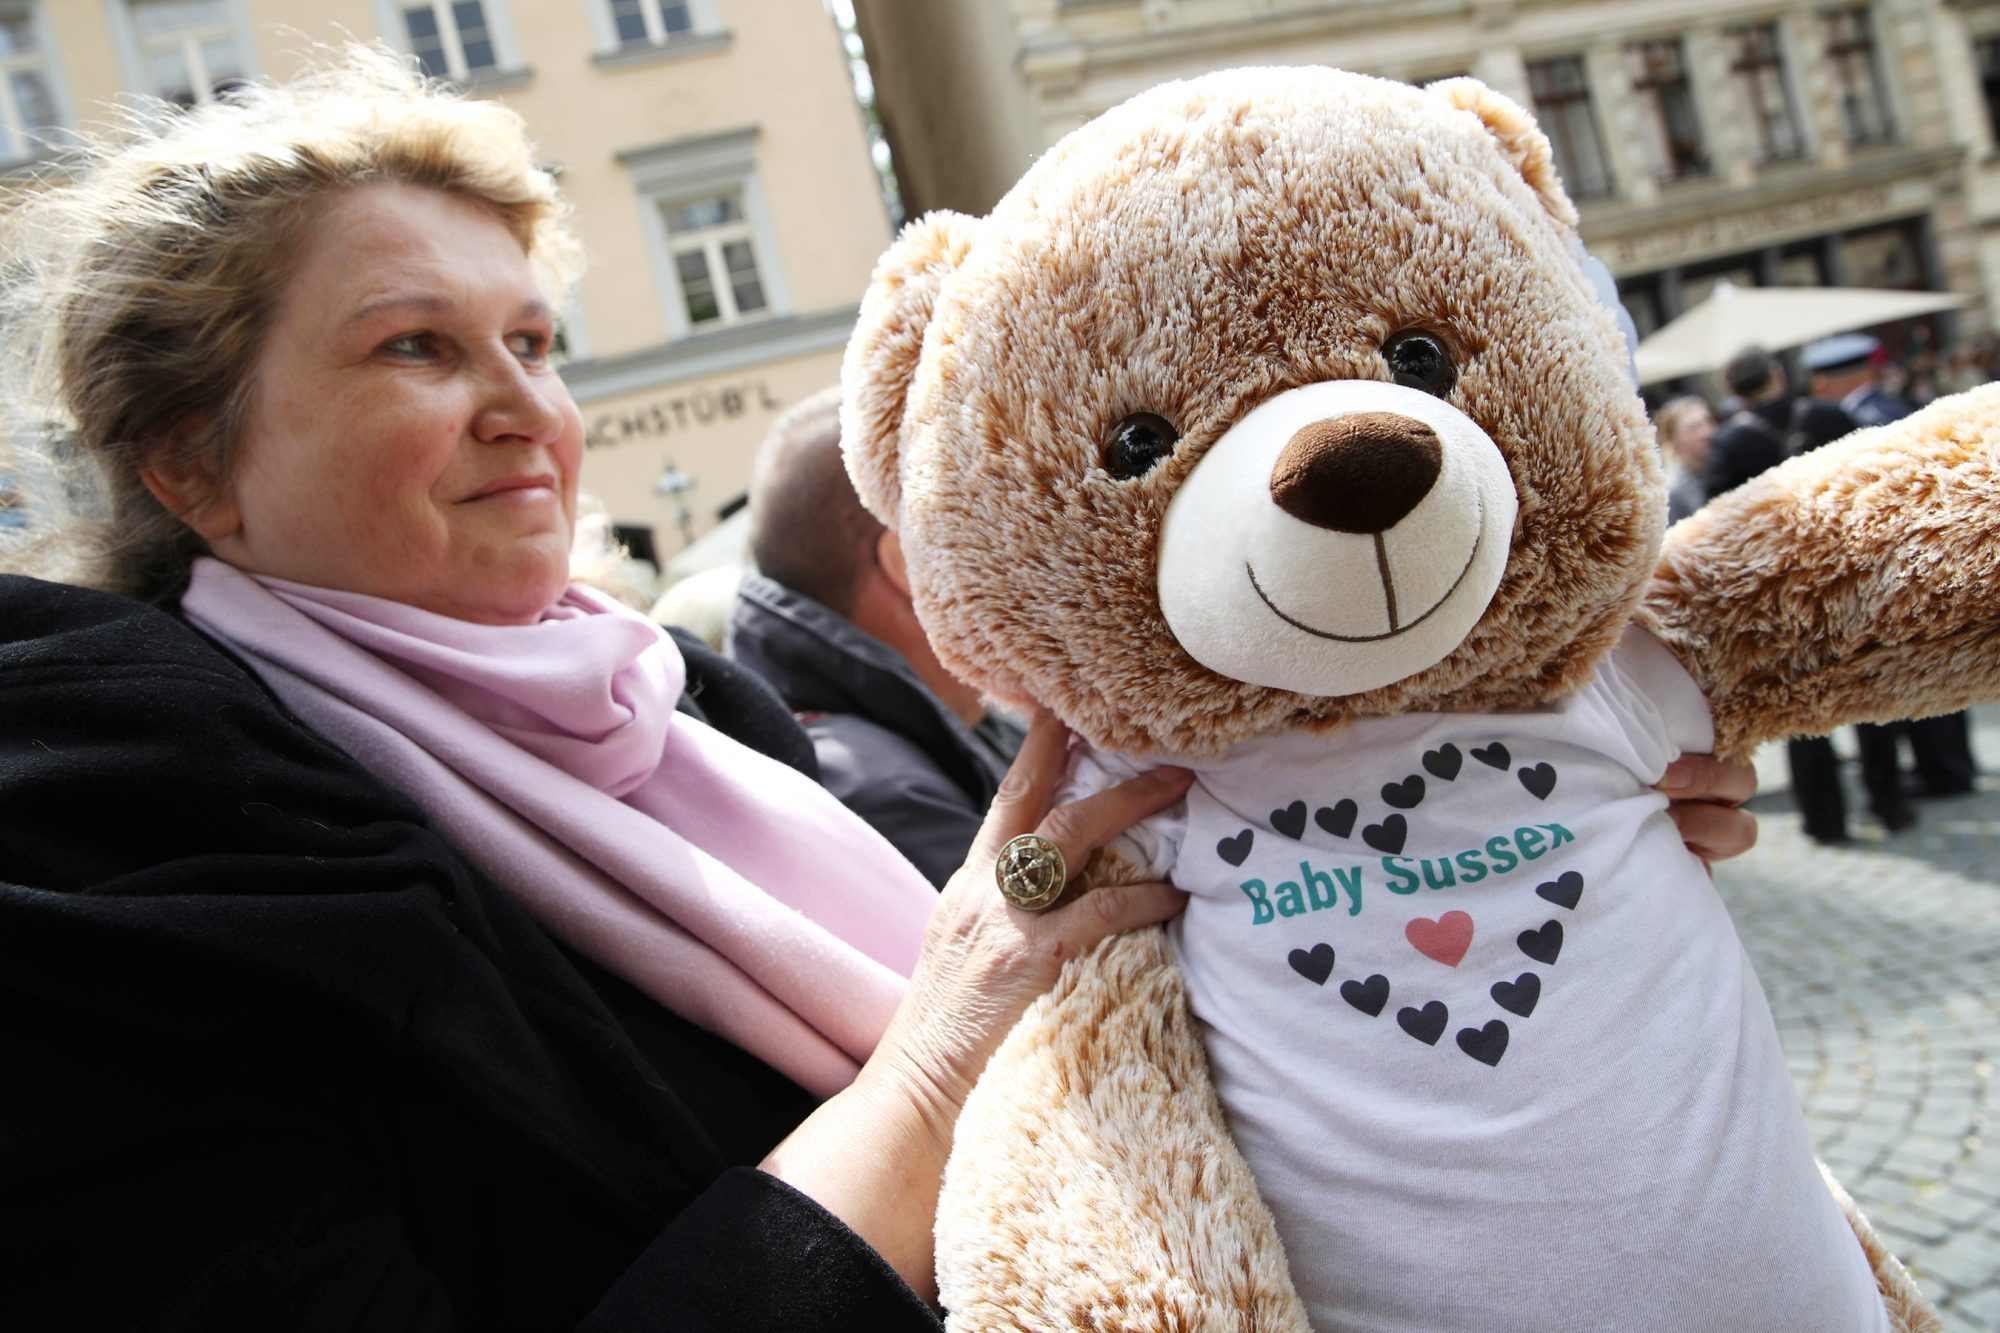 A well wisher holds a teddy bear wearing a t-shirt saying 'Baby Sussex' ahead of the arrival of Camilla, Duchess of Cornwall at St. Thomas Church on May 8, 2019 in Leipzig, Germany.